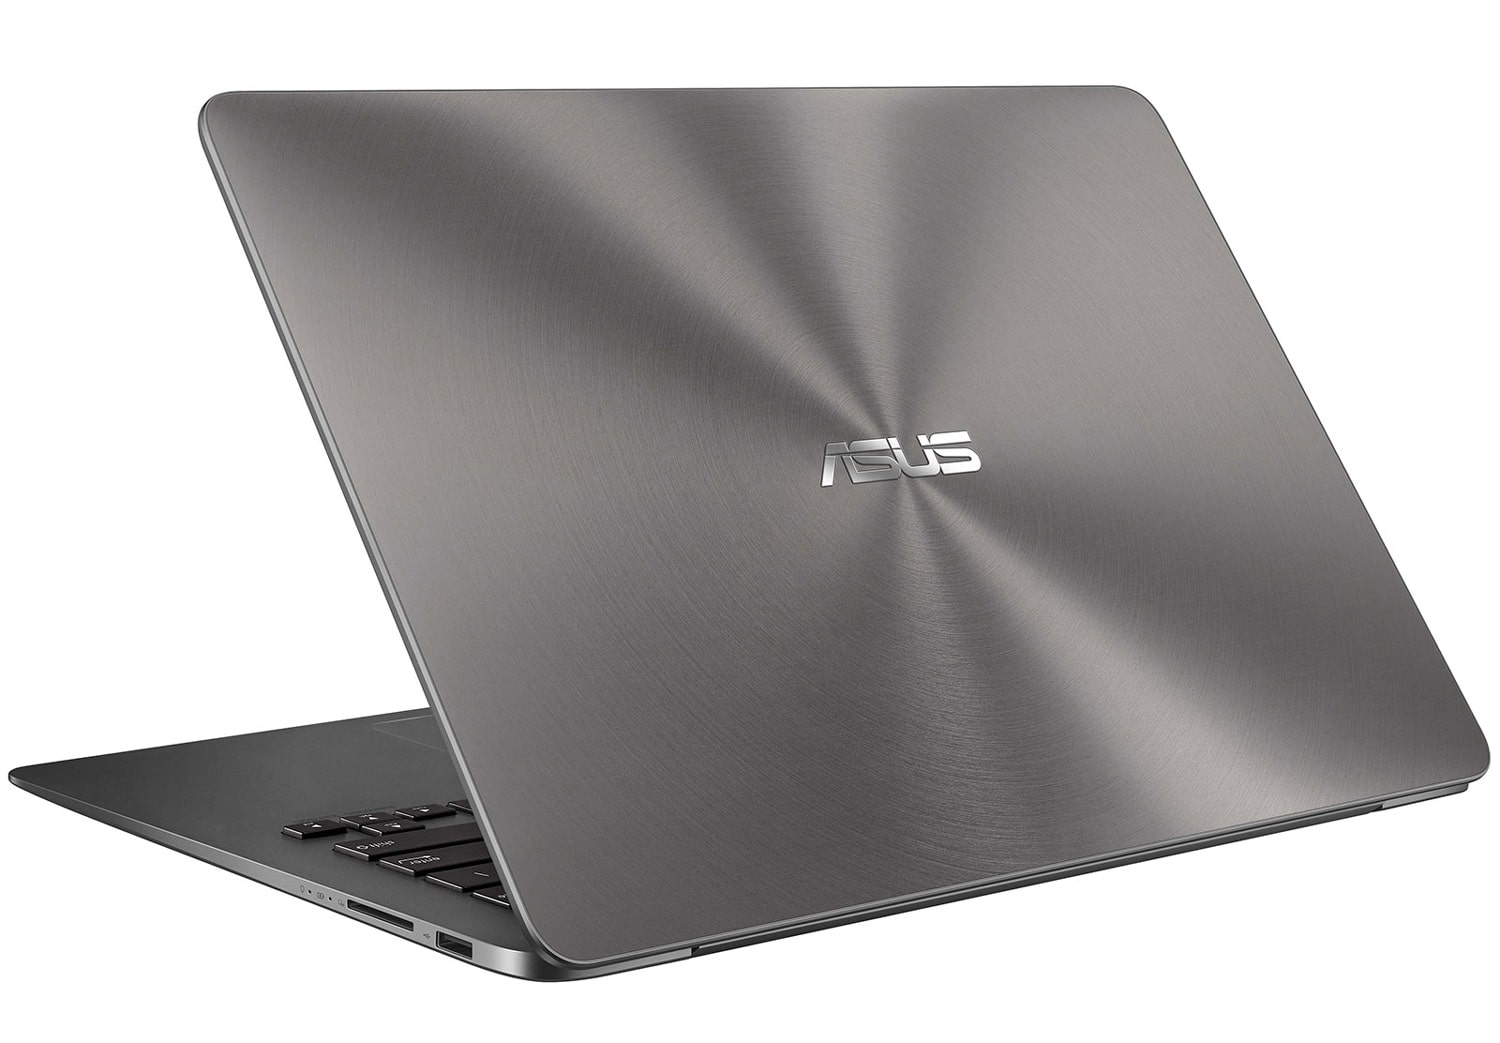 Asus Zenbook UX430UA-GV518T, ultrabook 14 pouces IPS Full SSD Kaby à 699€